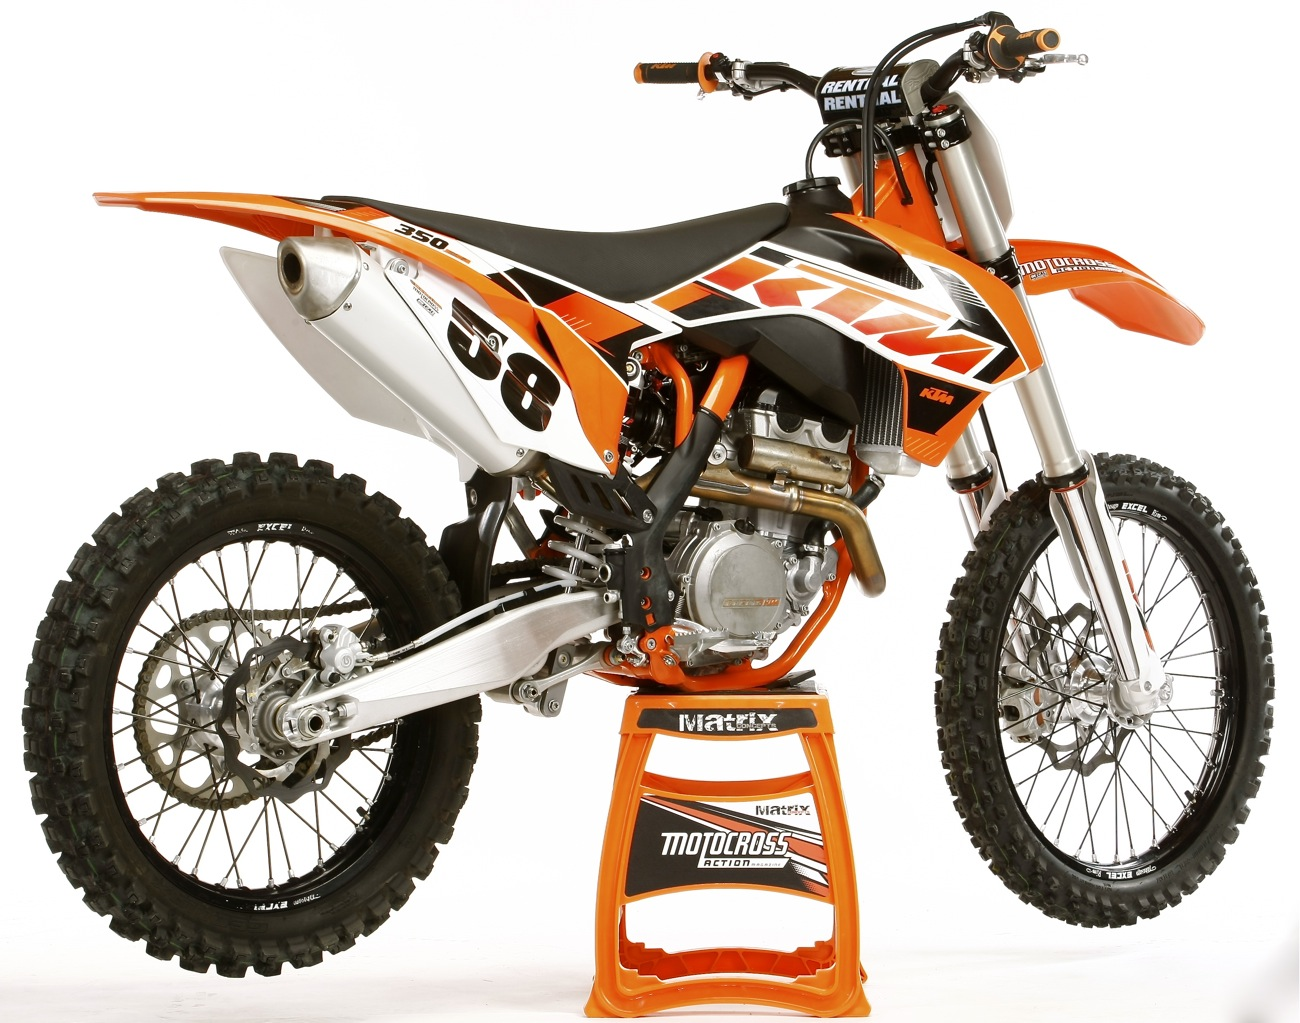 2014 Ktm 350 Sx F Wiring Diagram Trusted Diagrams Freeride 250r Mxas 2015 350sxf Motocross Test Non Organic Winner